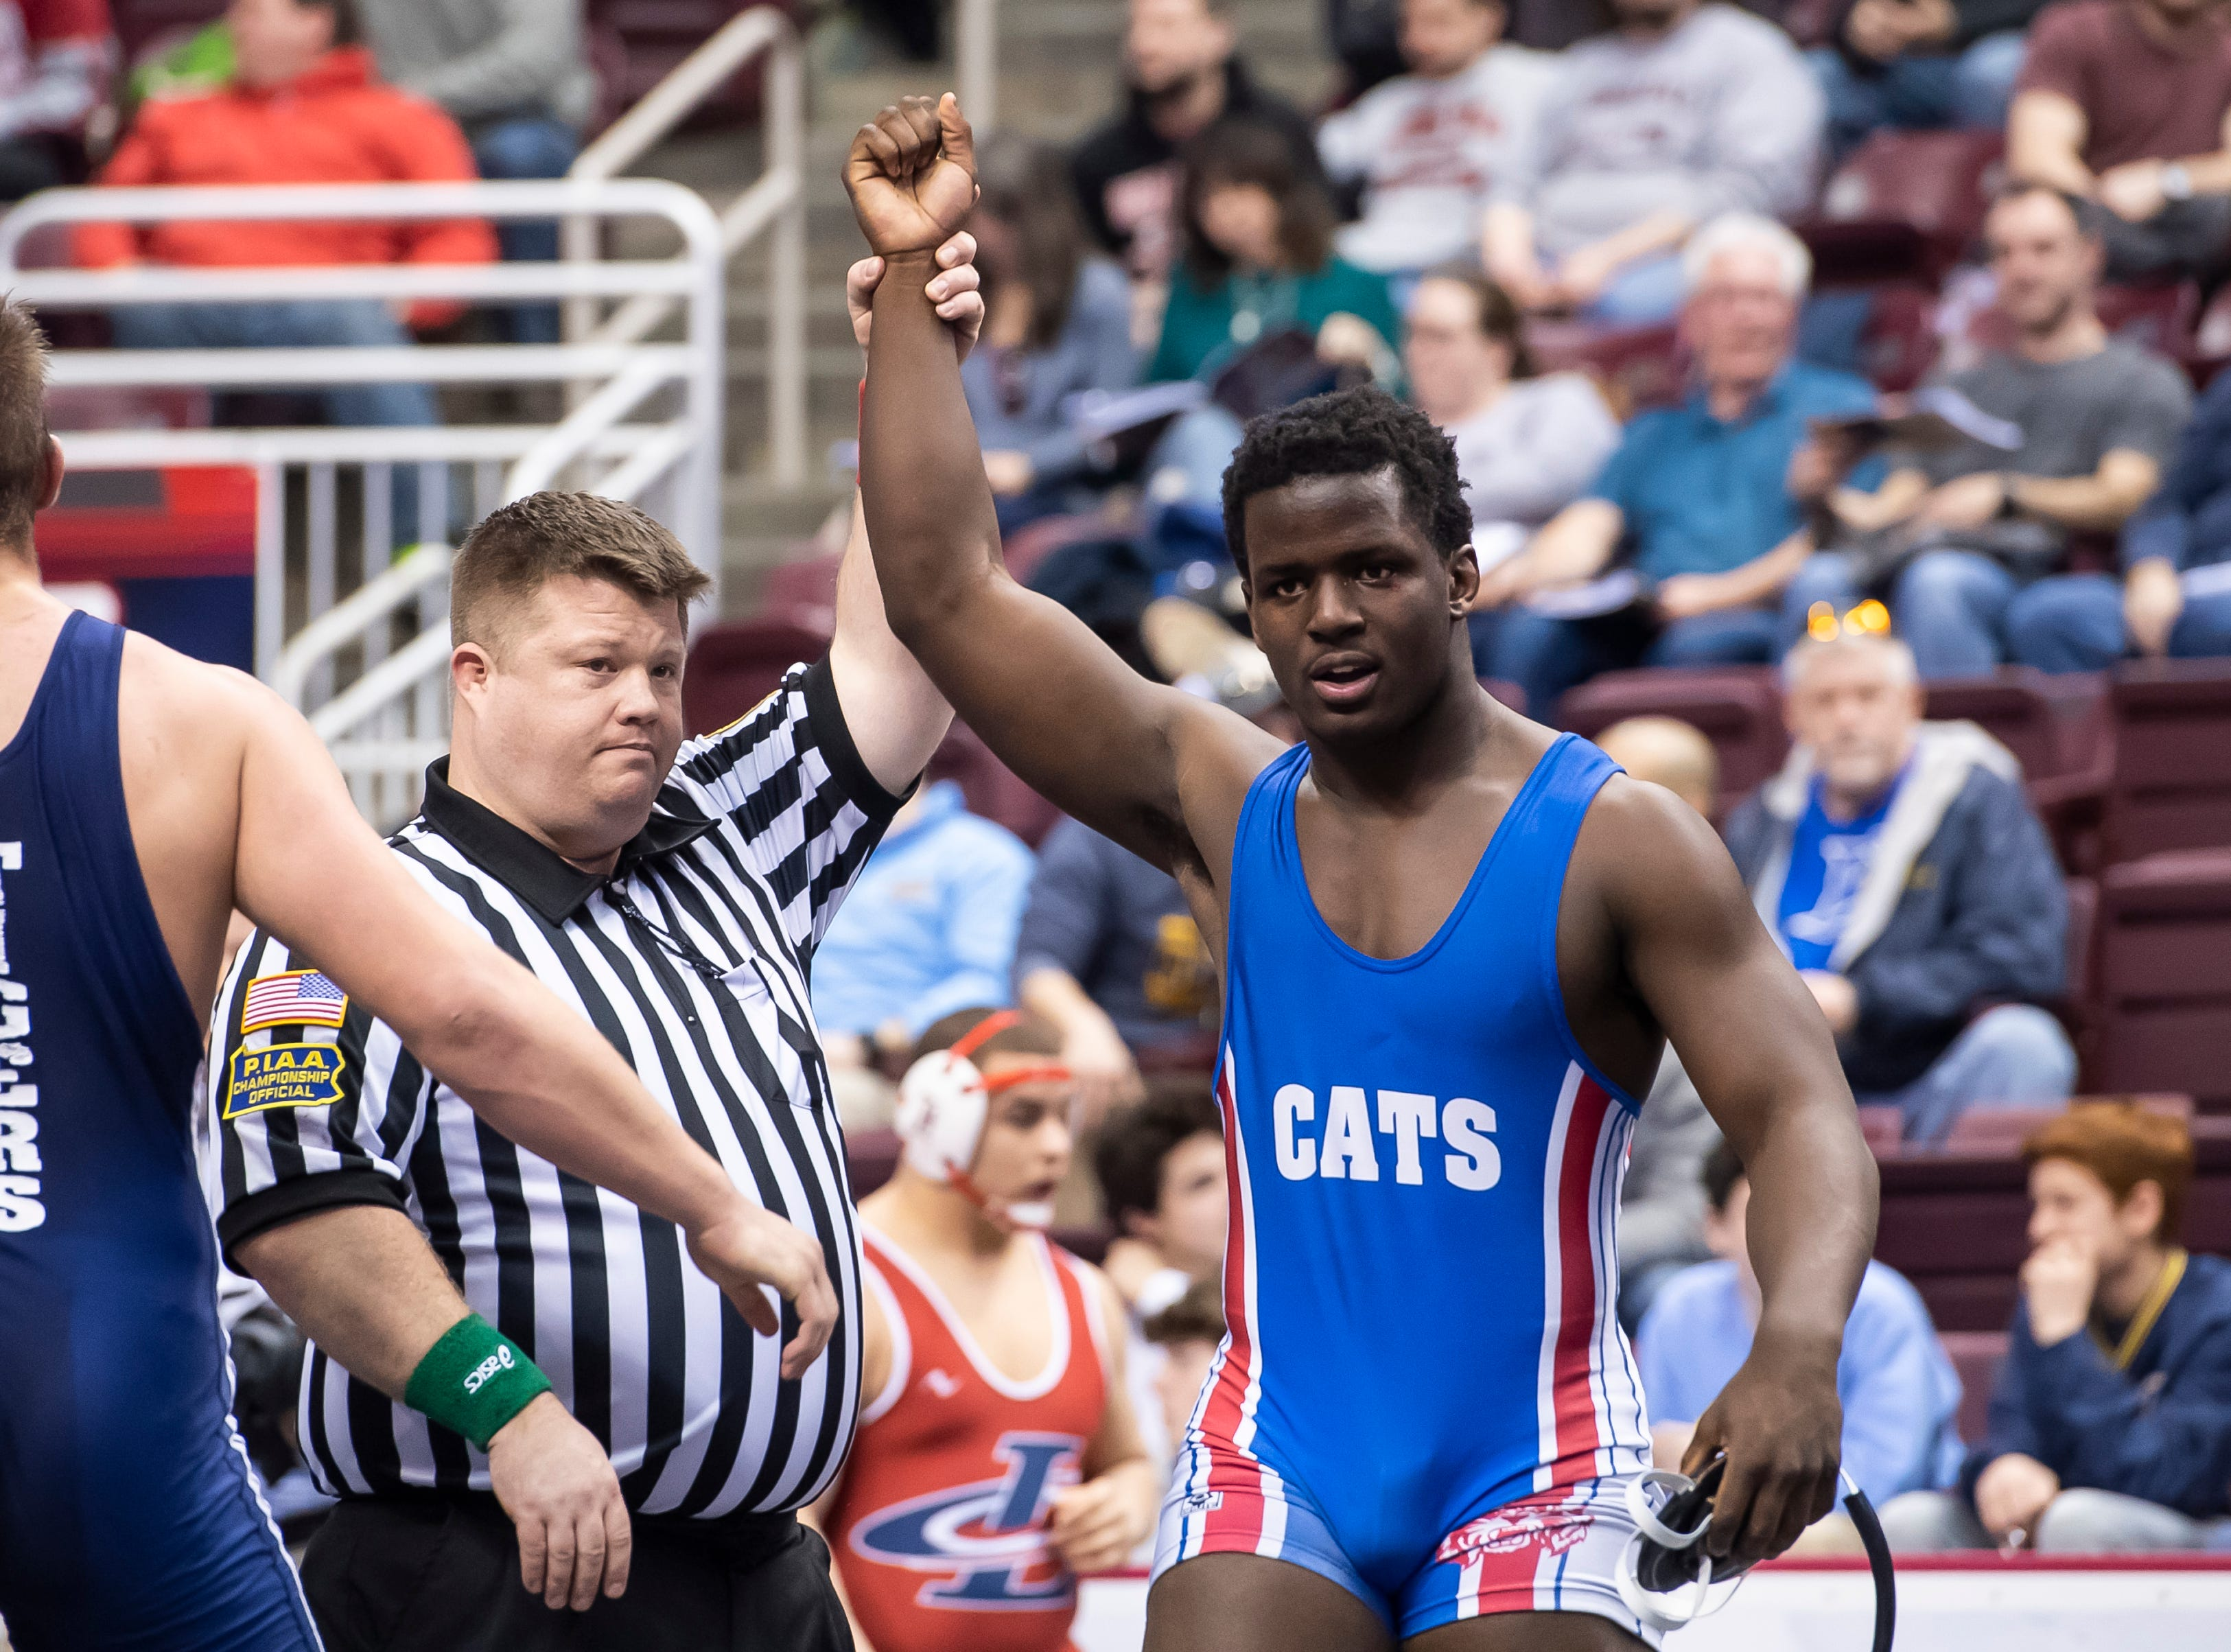 Dallastown's Jamal Brandon has his arm raised after defeating Hollidaysburg's Gus Dellinger during a 3A 220-pound second round consolation bout at the Giant Center in Hershey Friday, March 8, 2019. Brandon won in sudden victory 5-3.